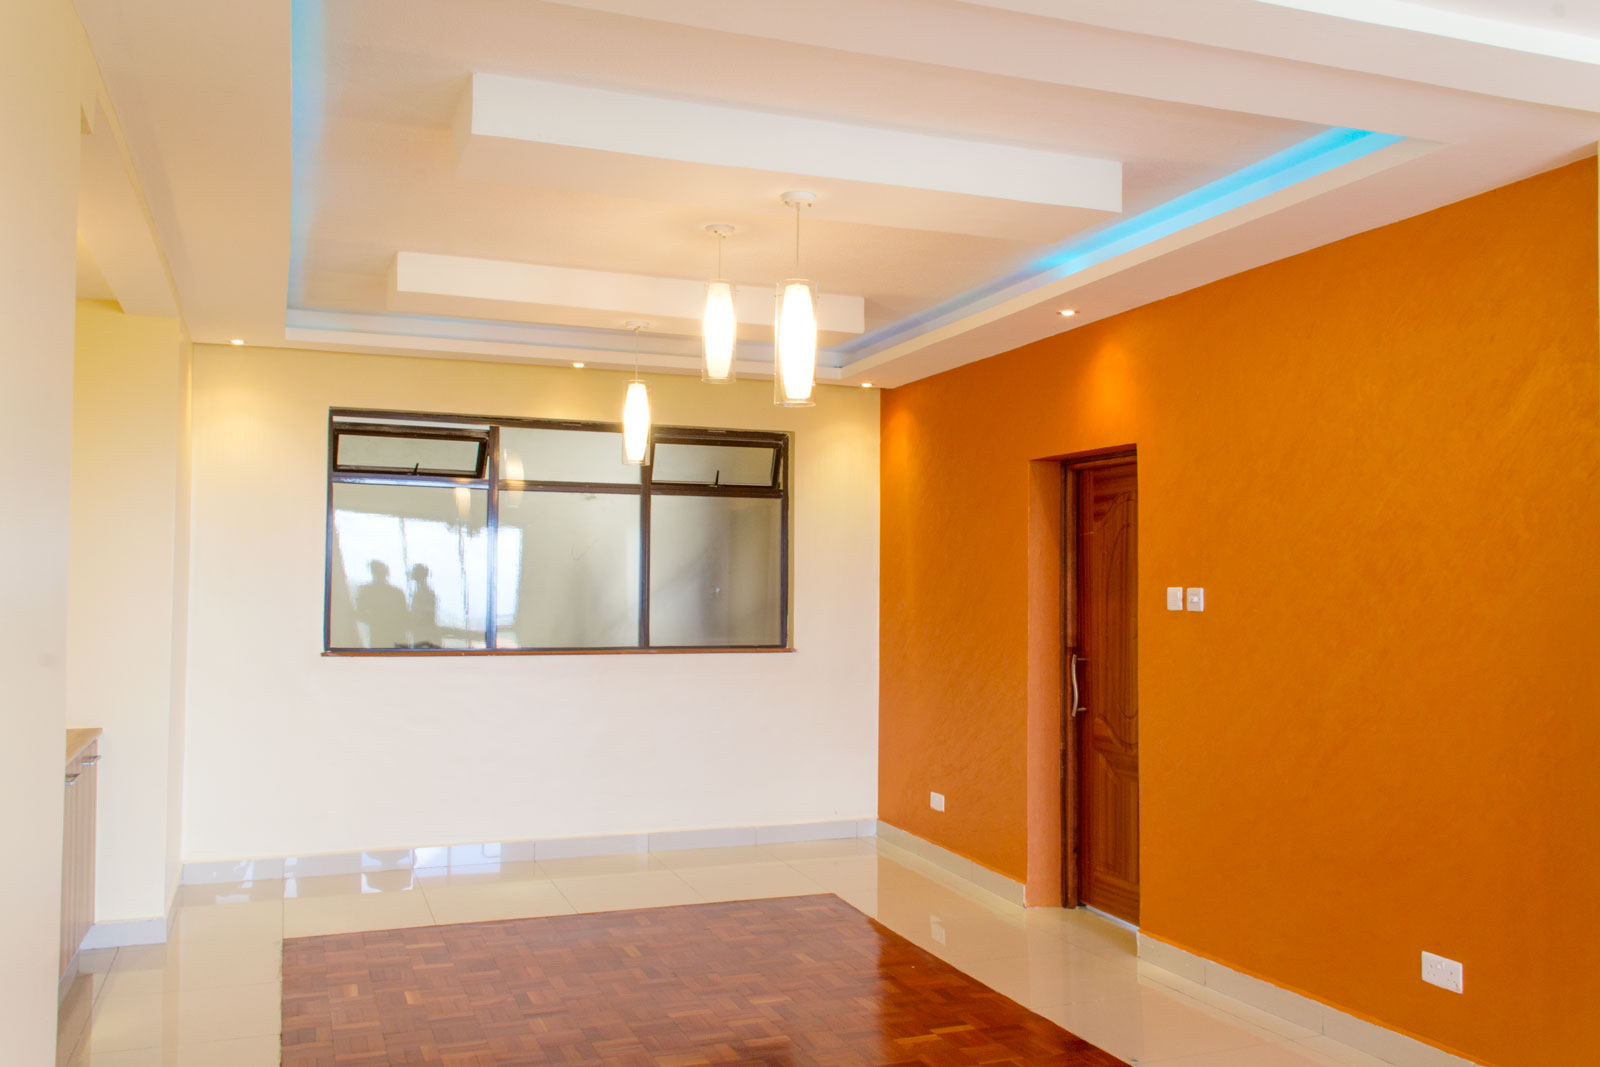 painting, curtains, colour schemes, gypsum ceiling